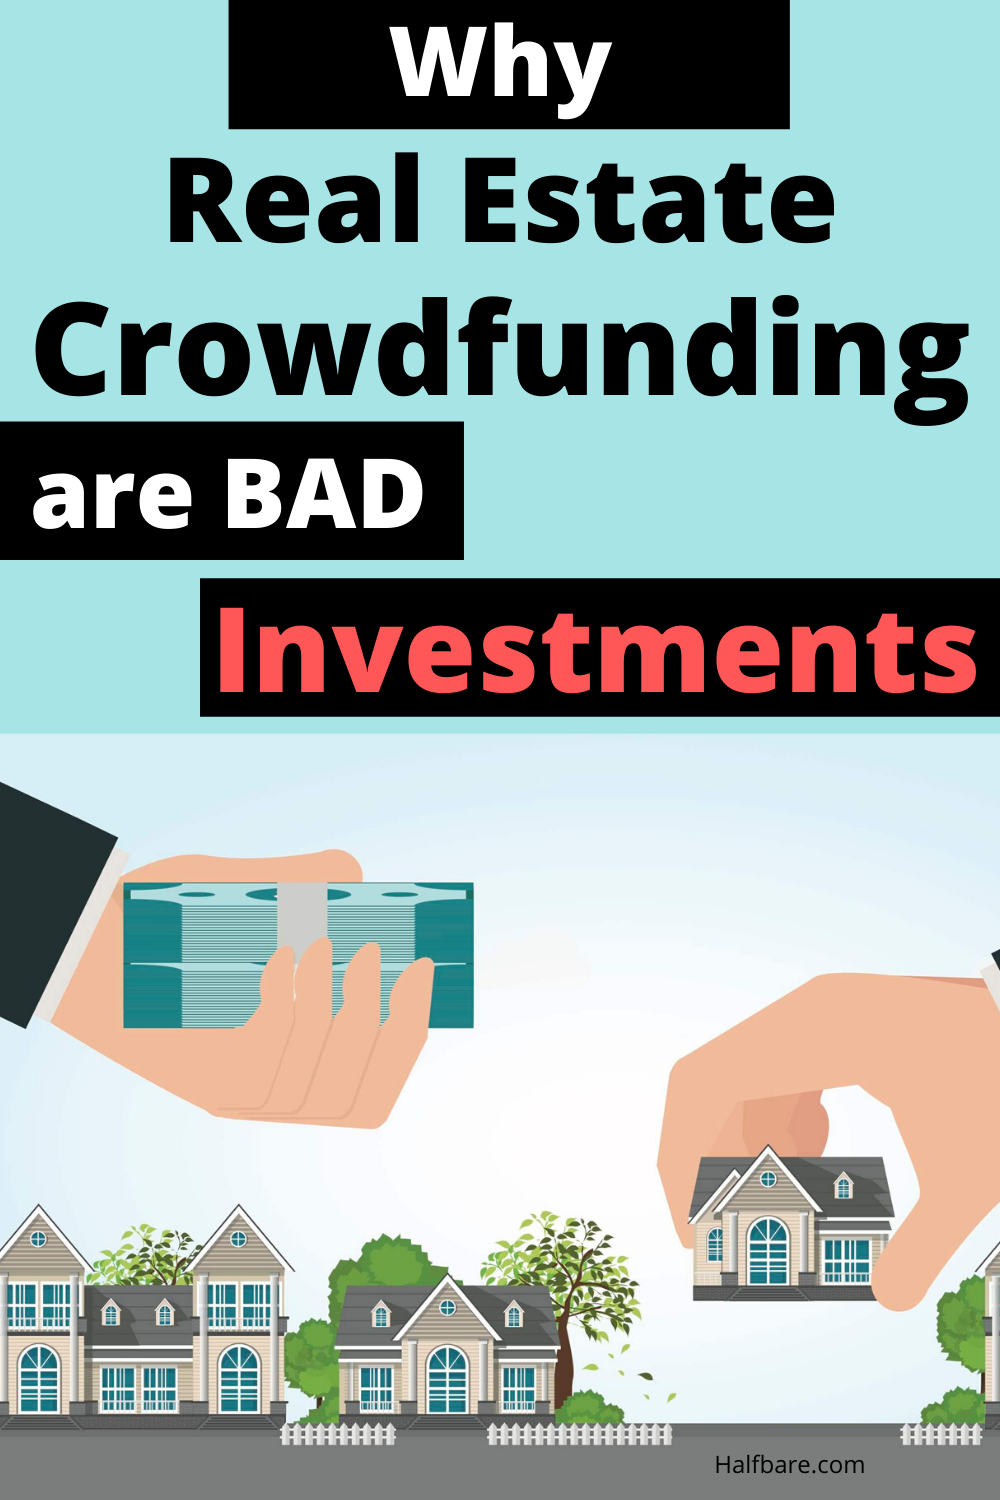 Real Estate Crowdfunding Companies Like Fundrise Are Bad